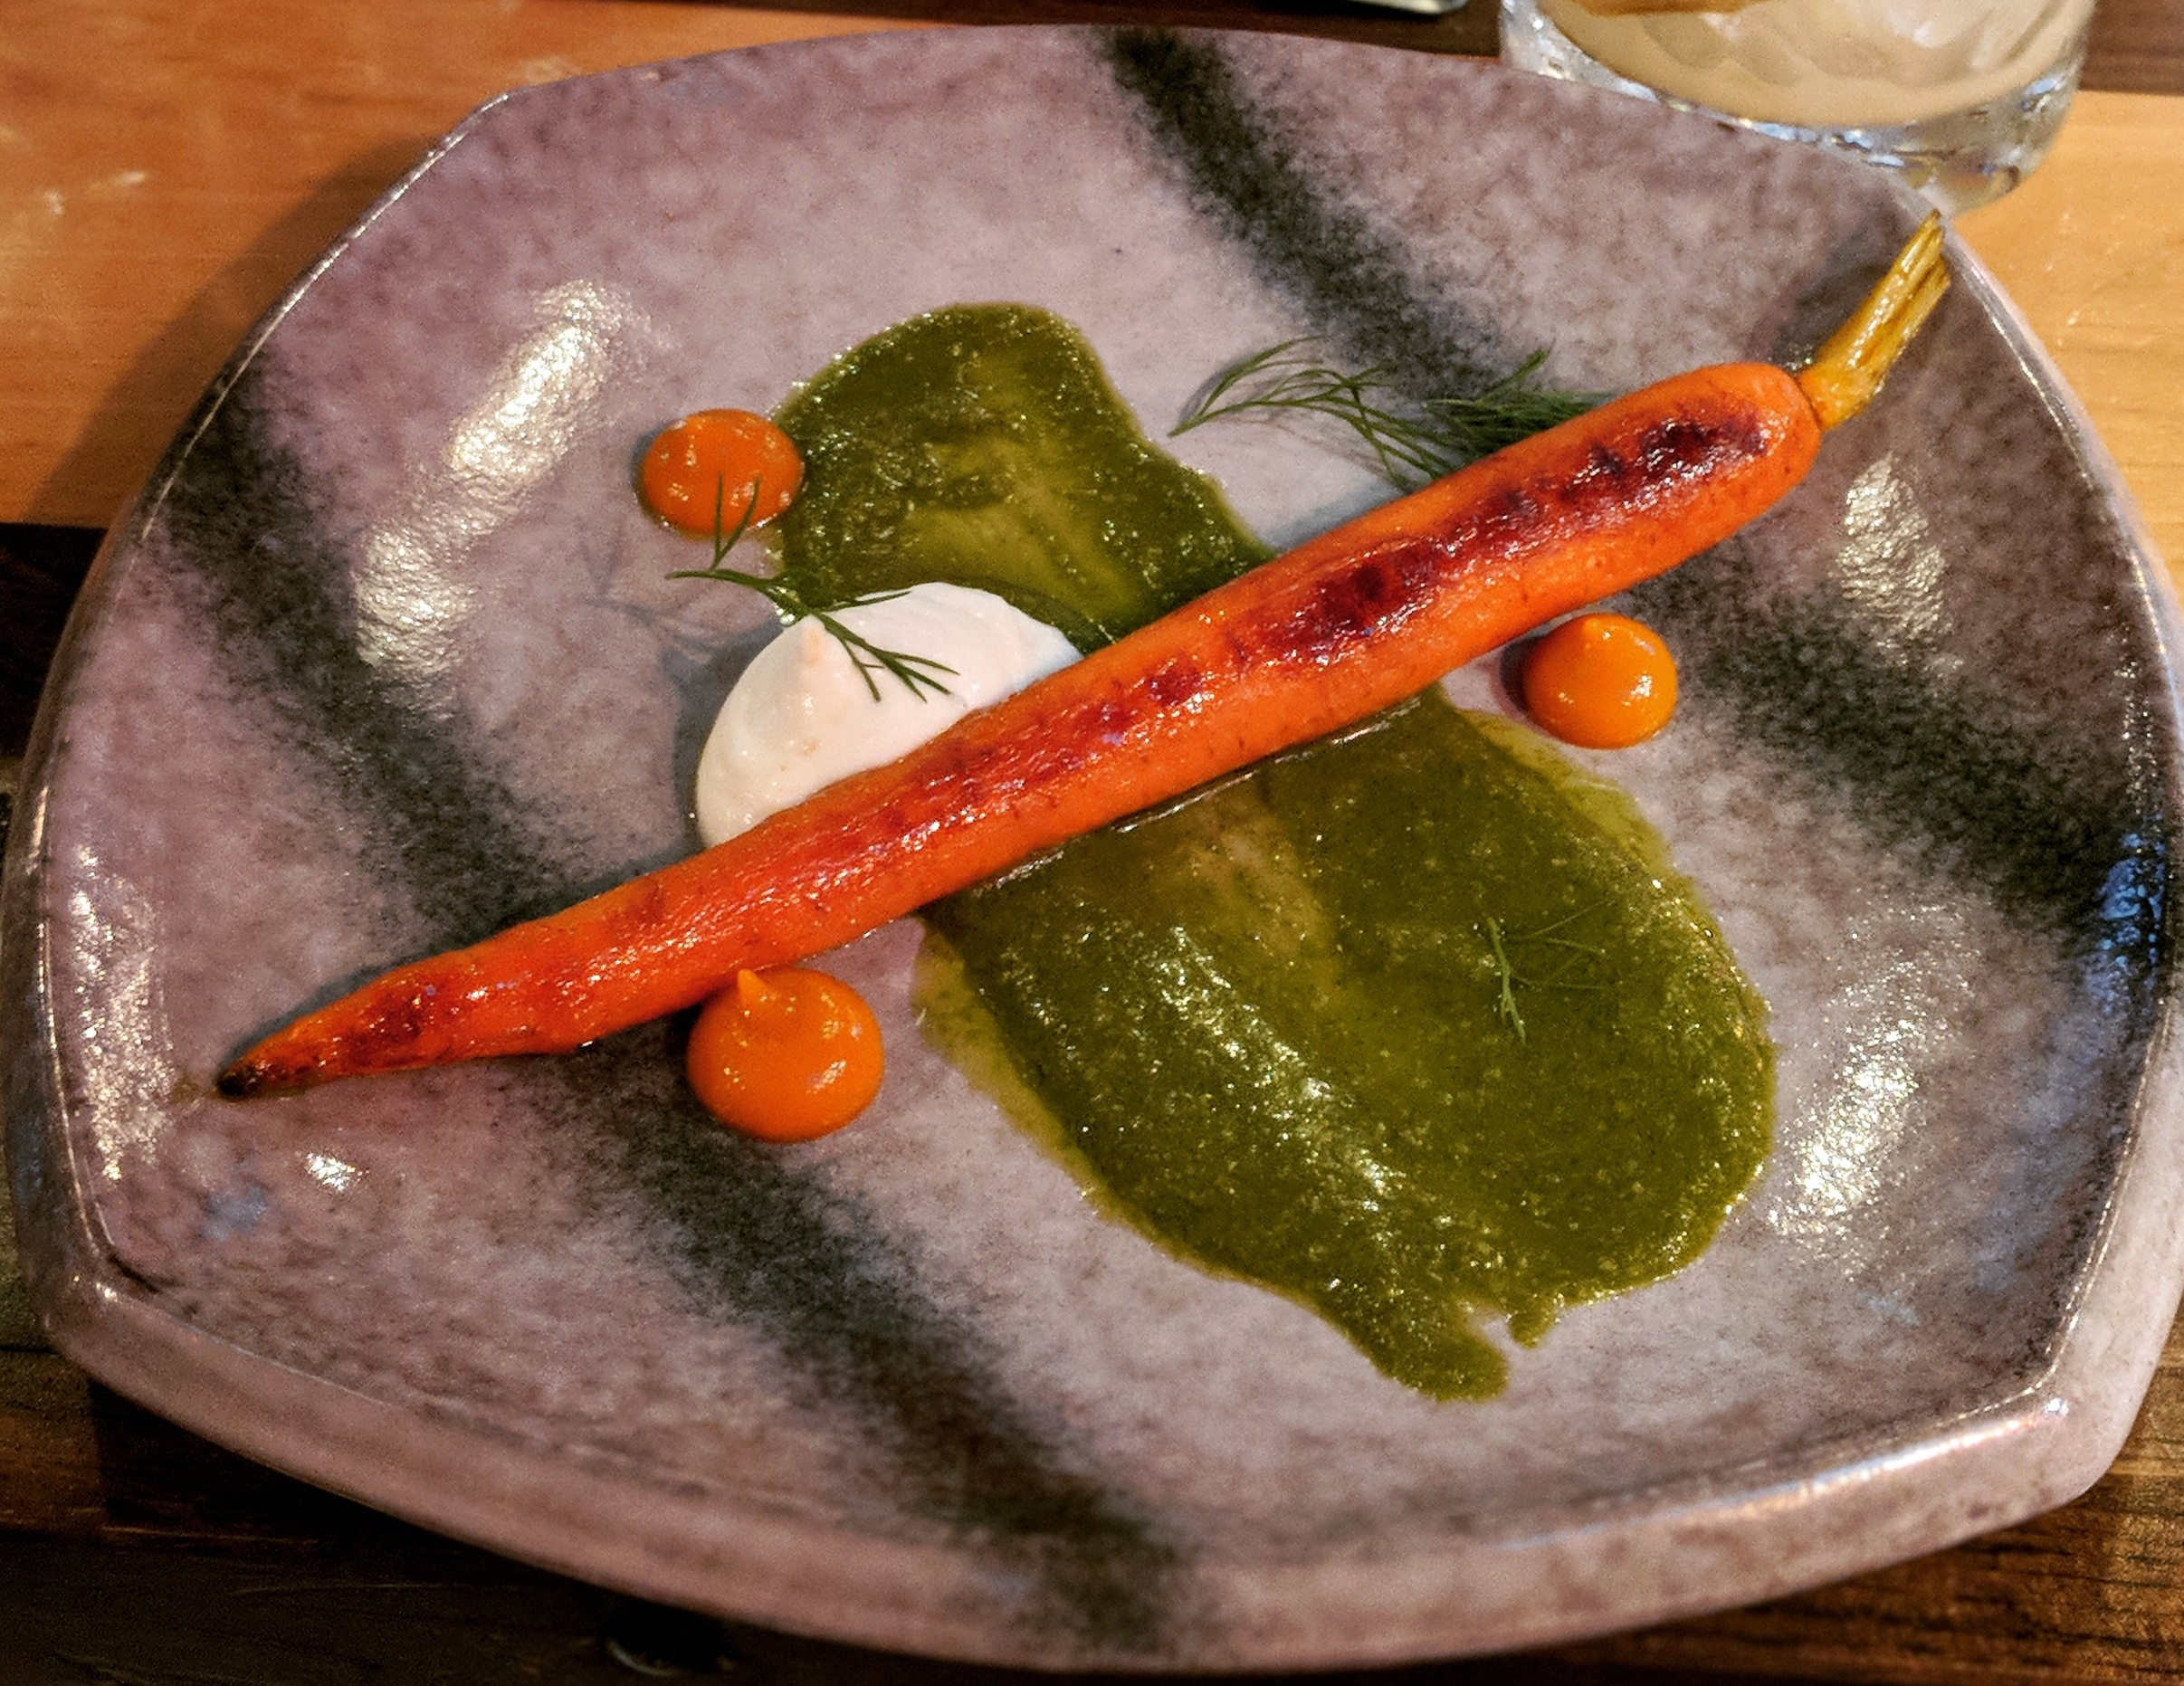 Fourth Course: Carrot three ways; roasted carrot over pesto (made from the leaves), carrot puree.